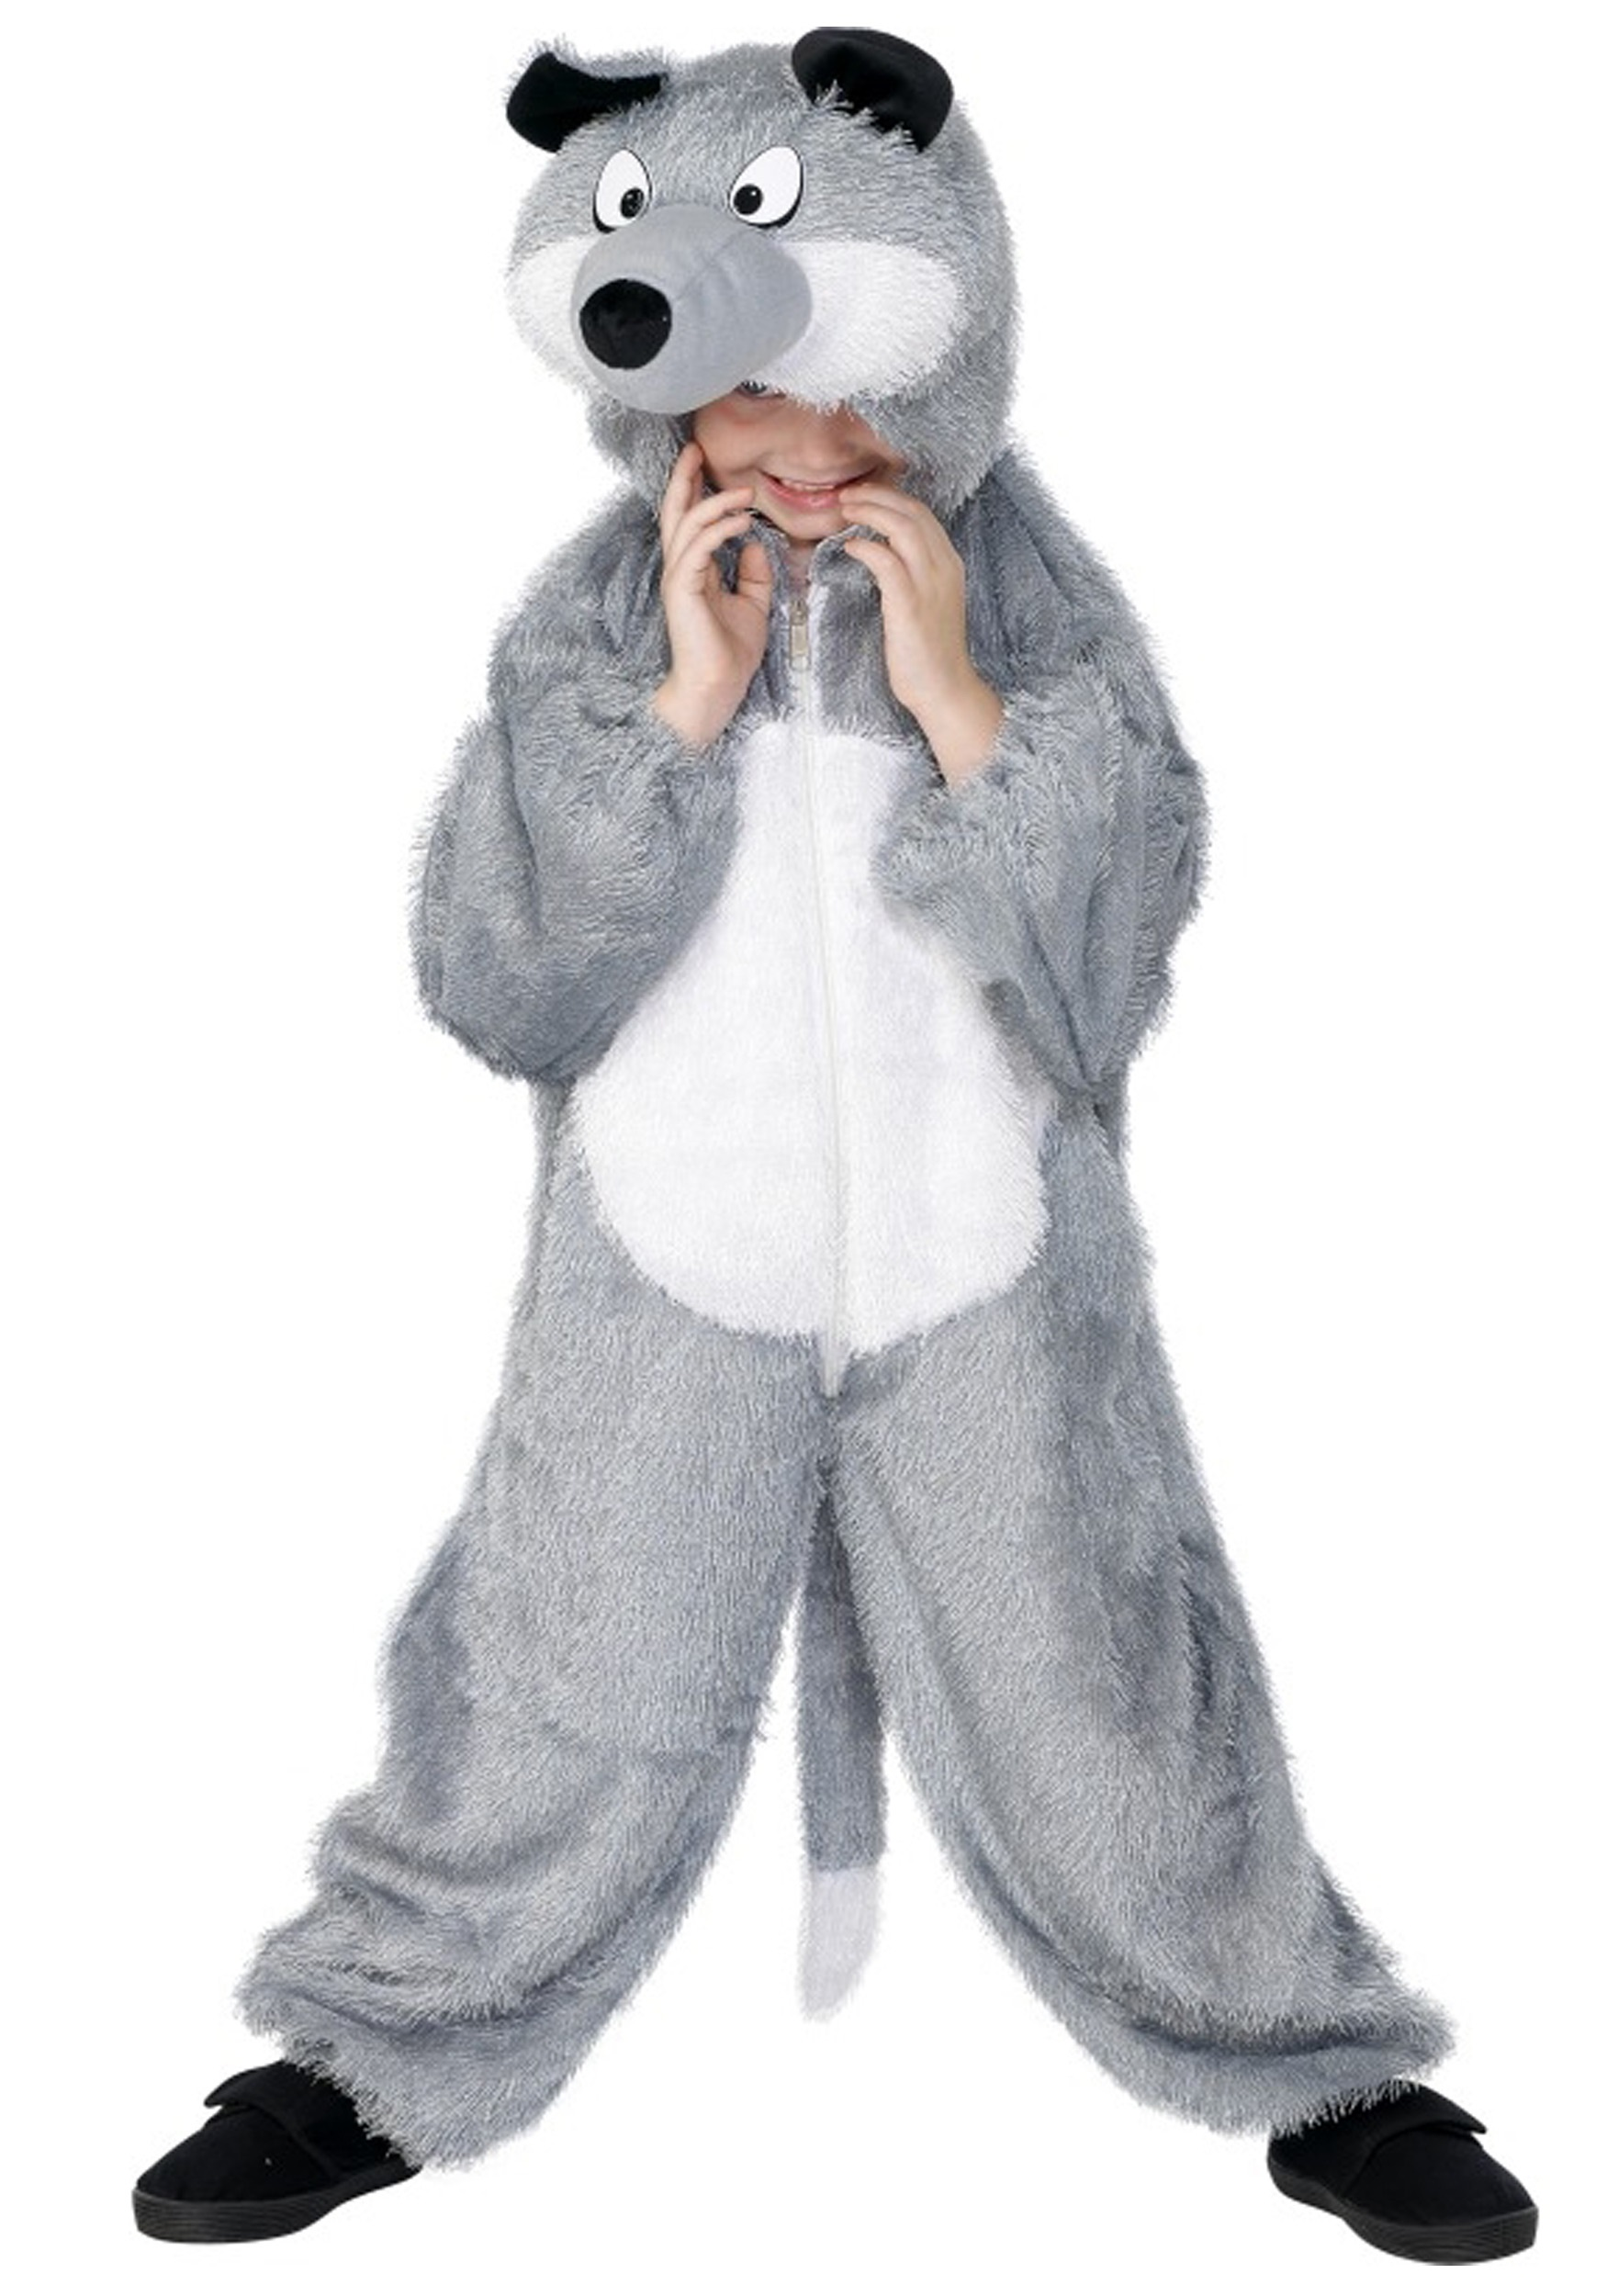 Halloween wolf costume for girls - photo#24  sc 1 st  animalia-life.club & Halloween Wolf Costume For Girls